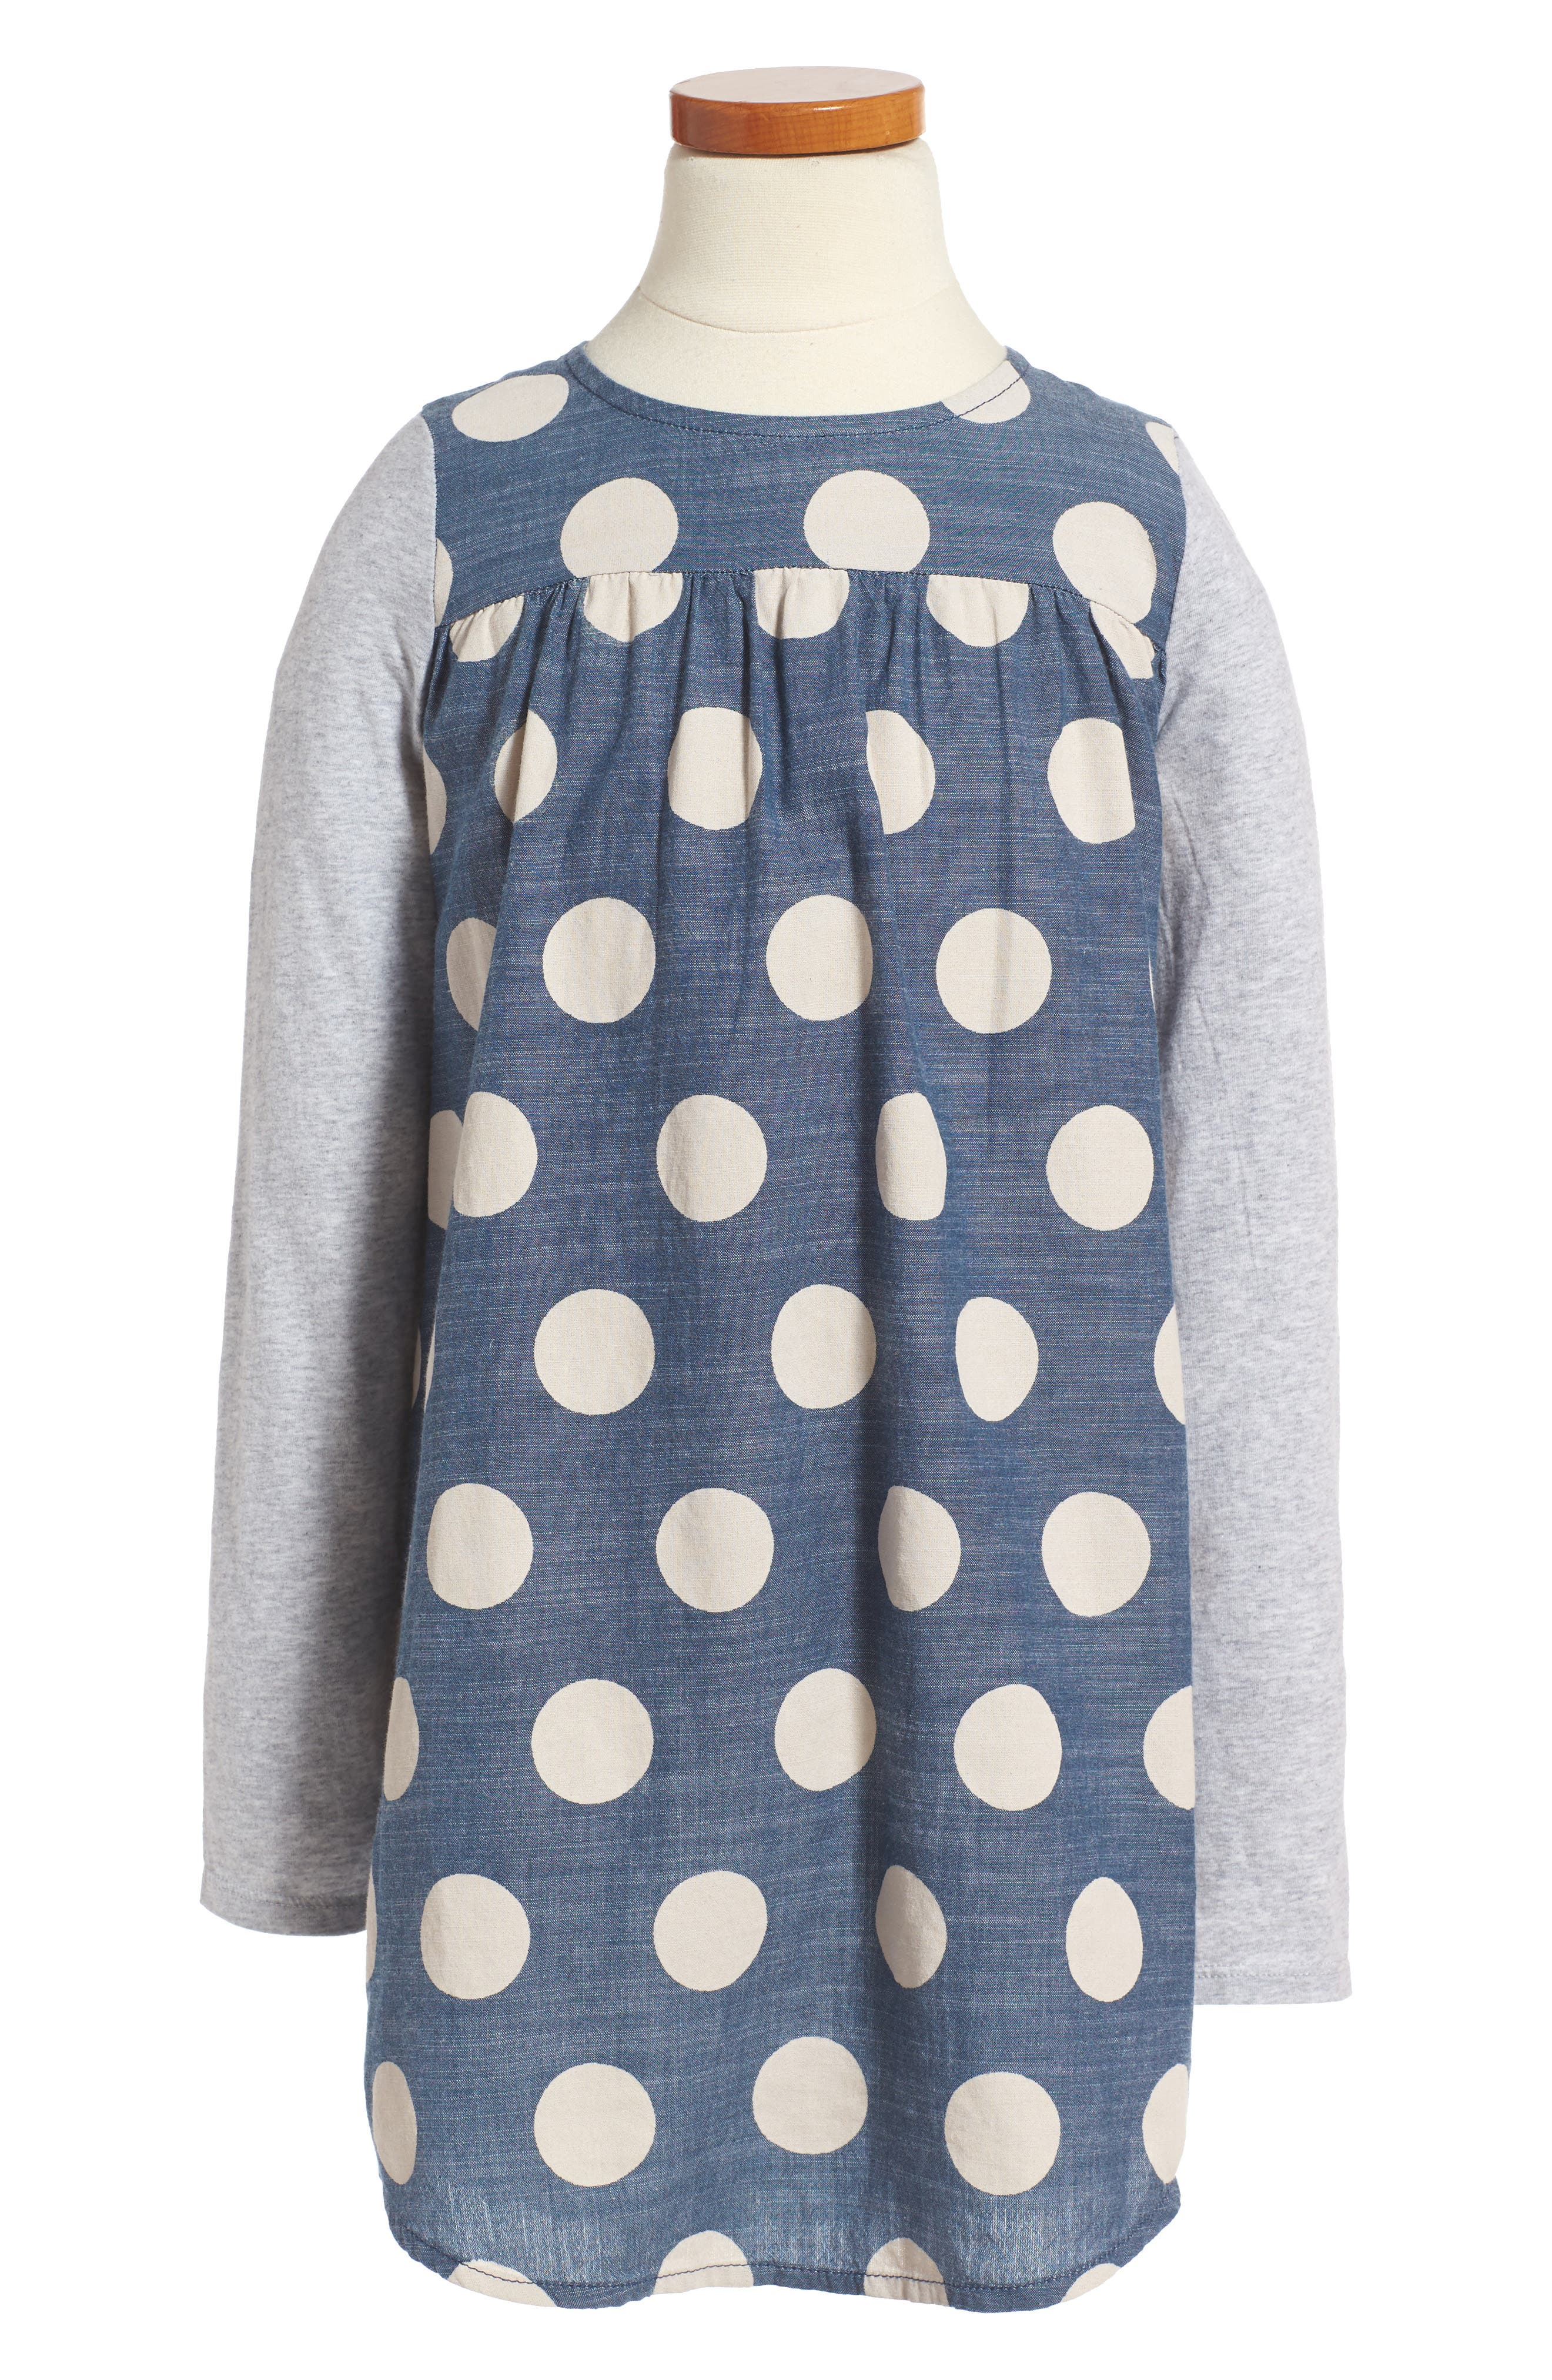 Alternate Image 1 Selected - Tucker + Tate Big Dot Woven Dress (Toddler Girls, Little Girls & Big Girls)